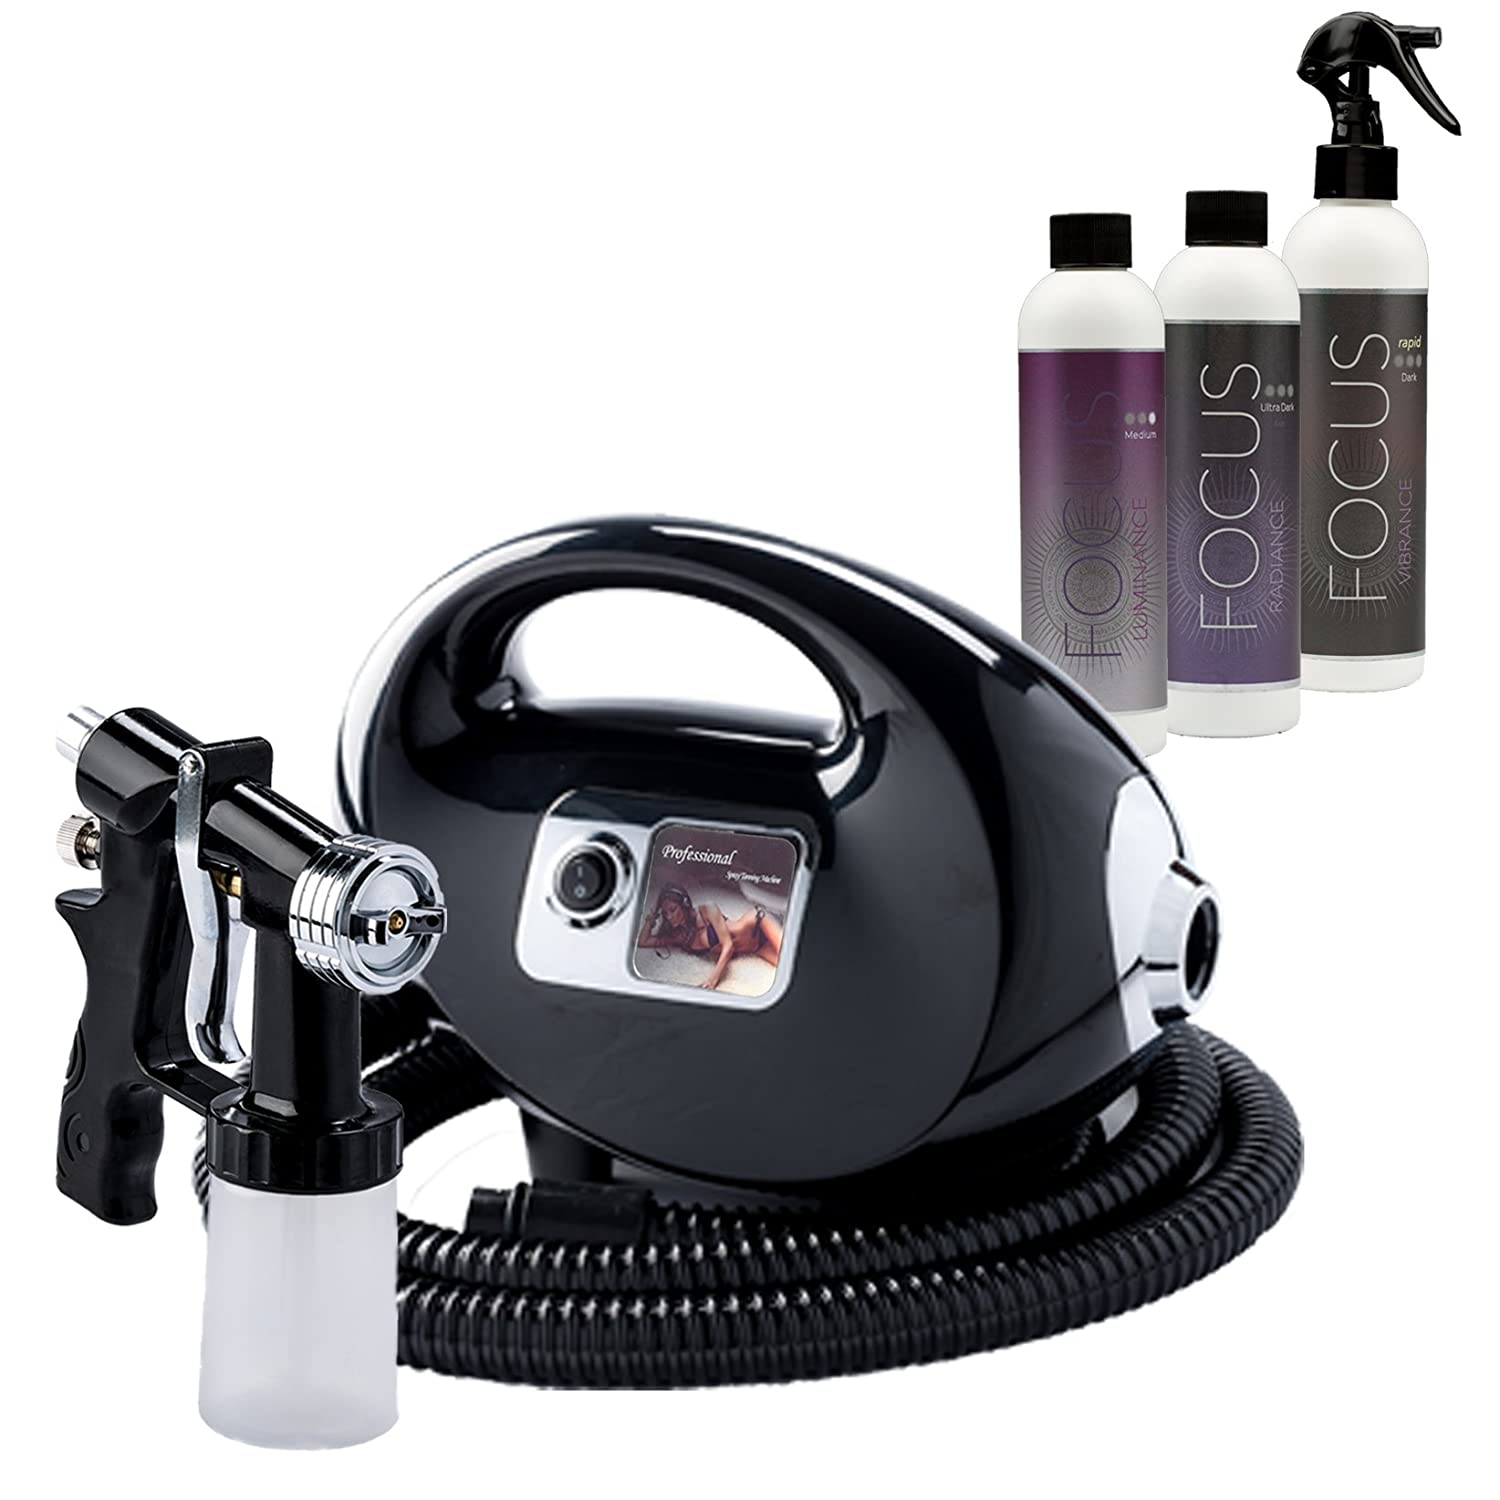 The Best Spray Tan Machine Top Brand Reviews 2